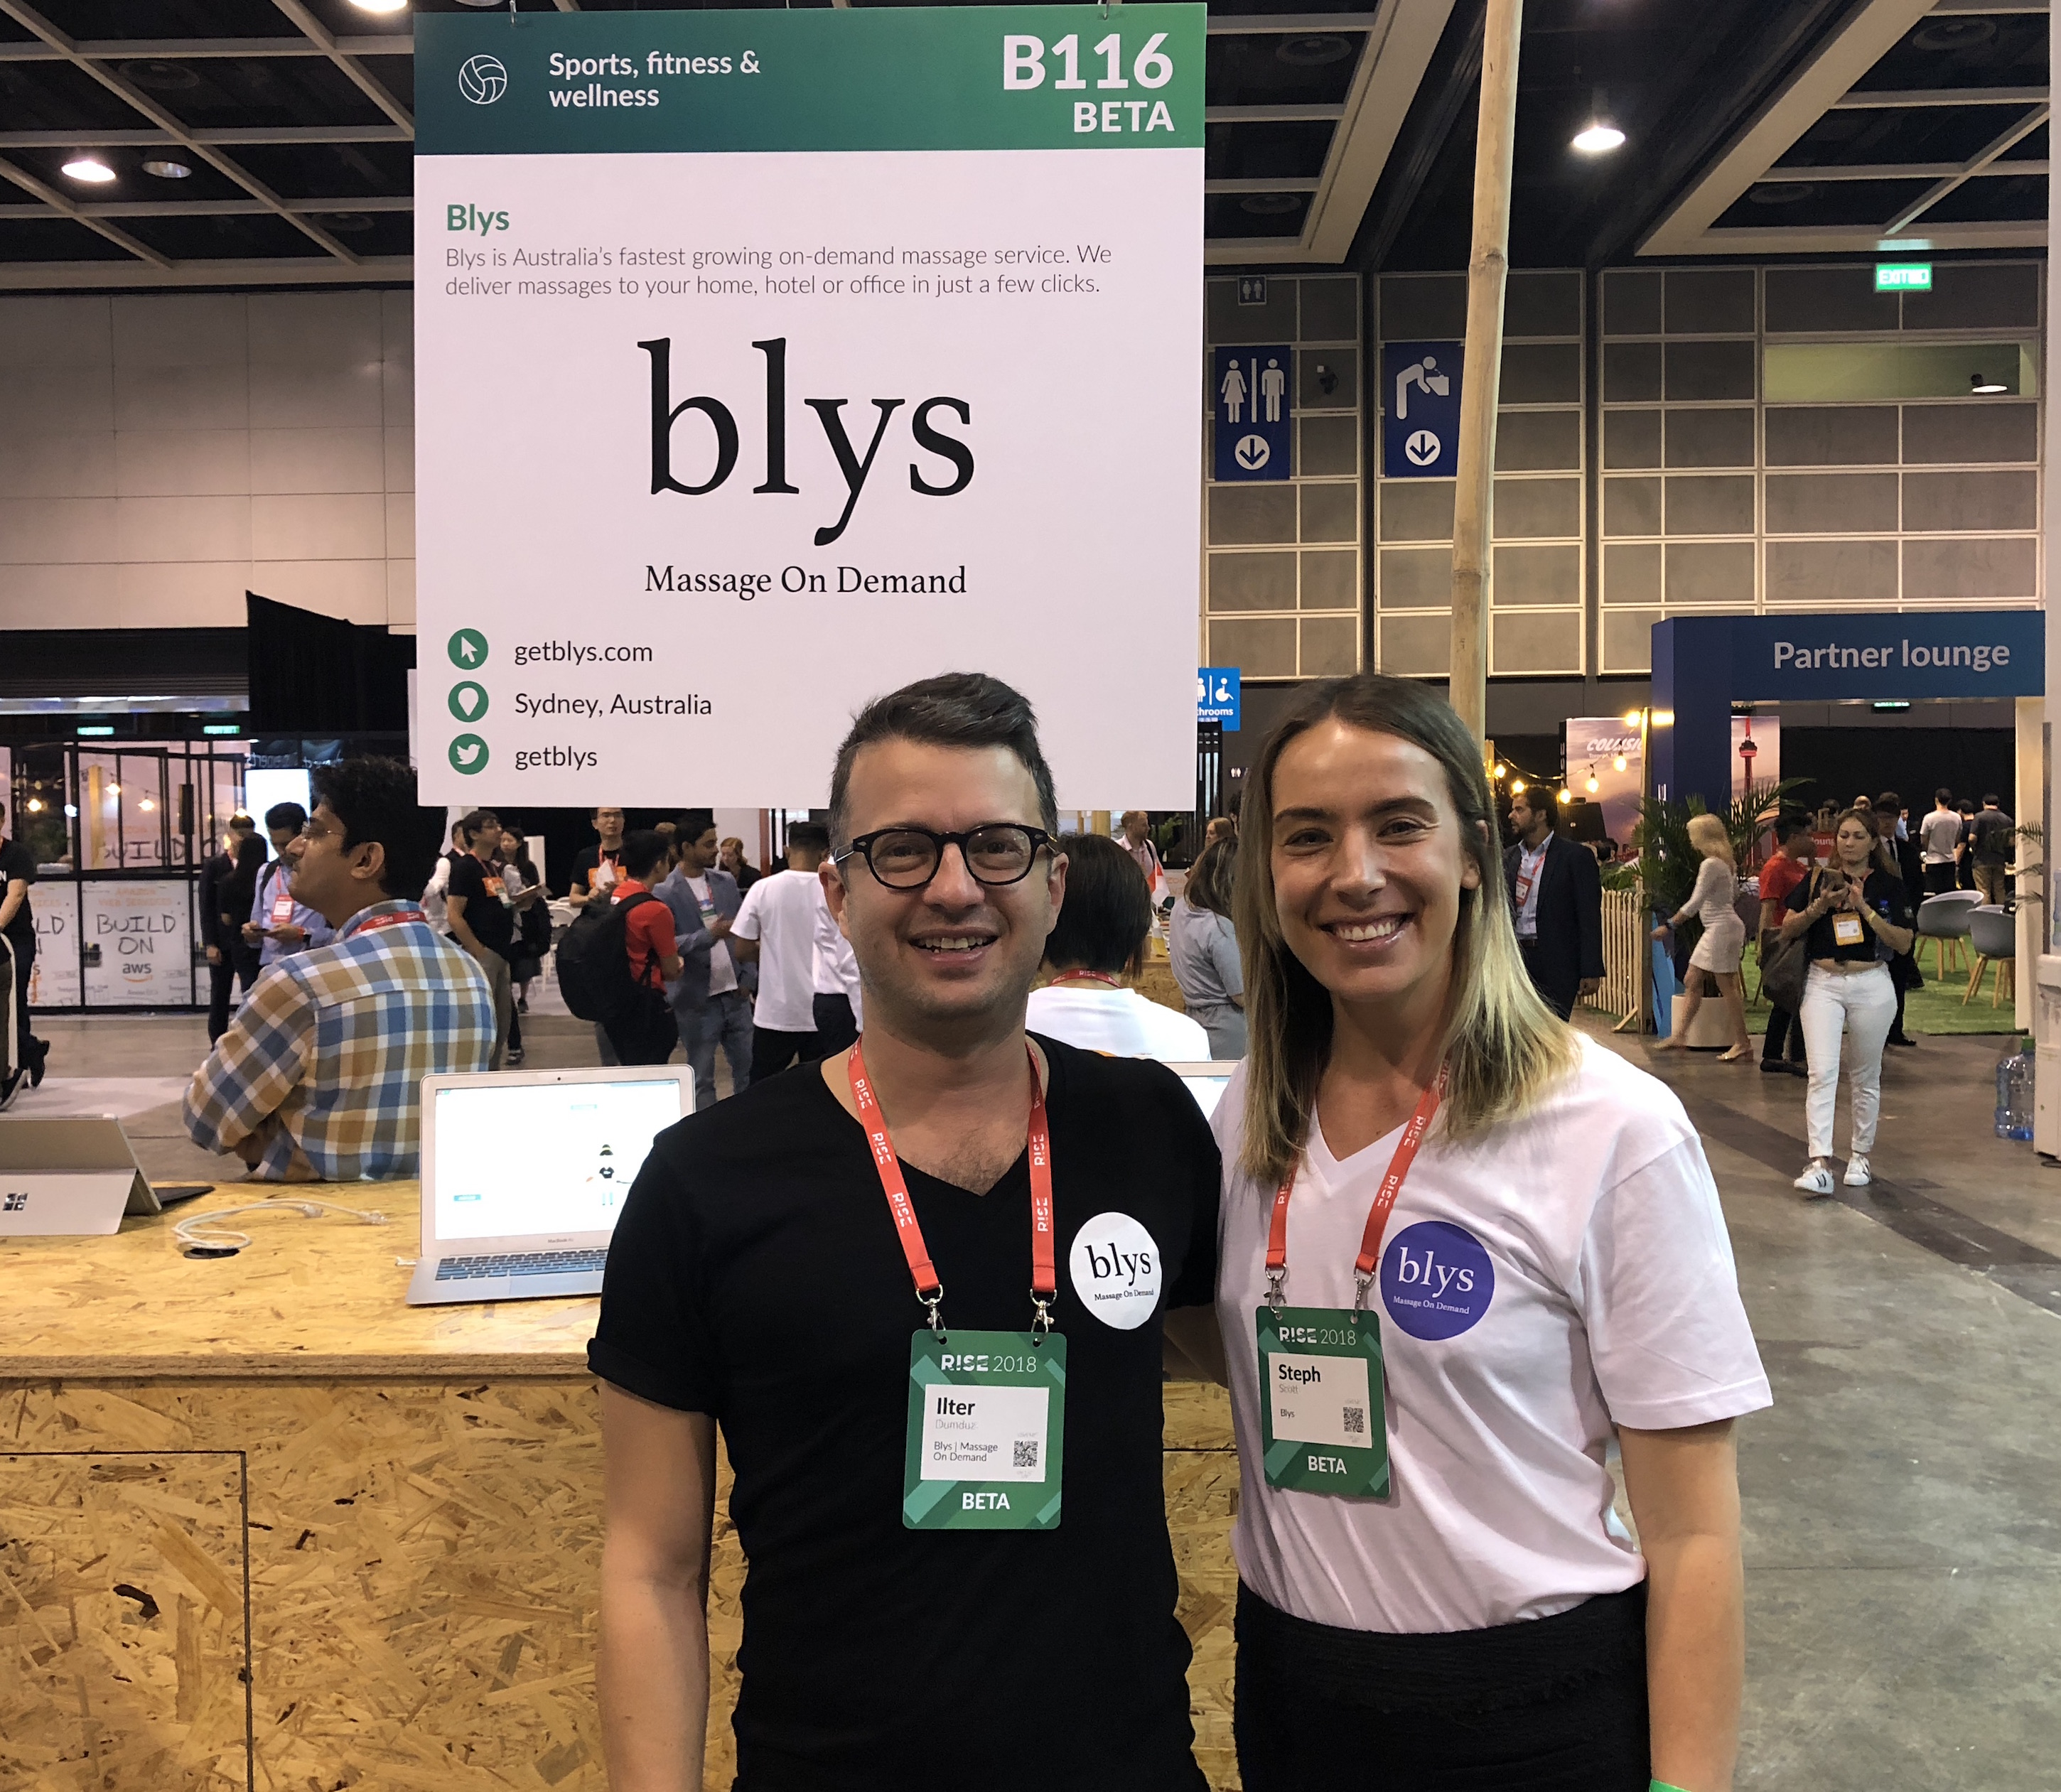 RISE 2018 - Blys massage on-demand exhibit